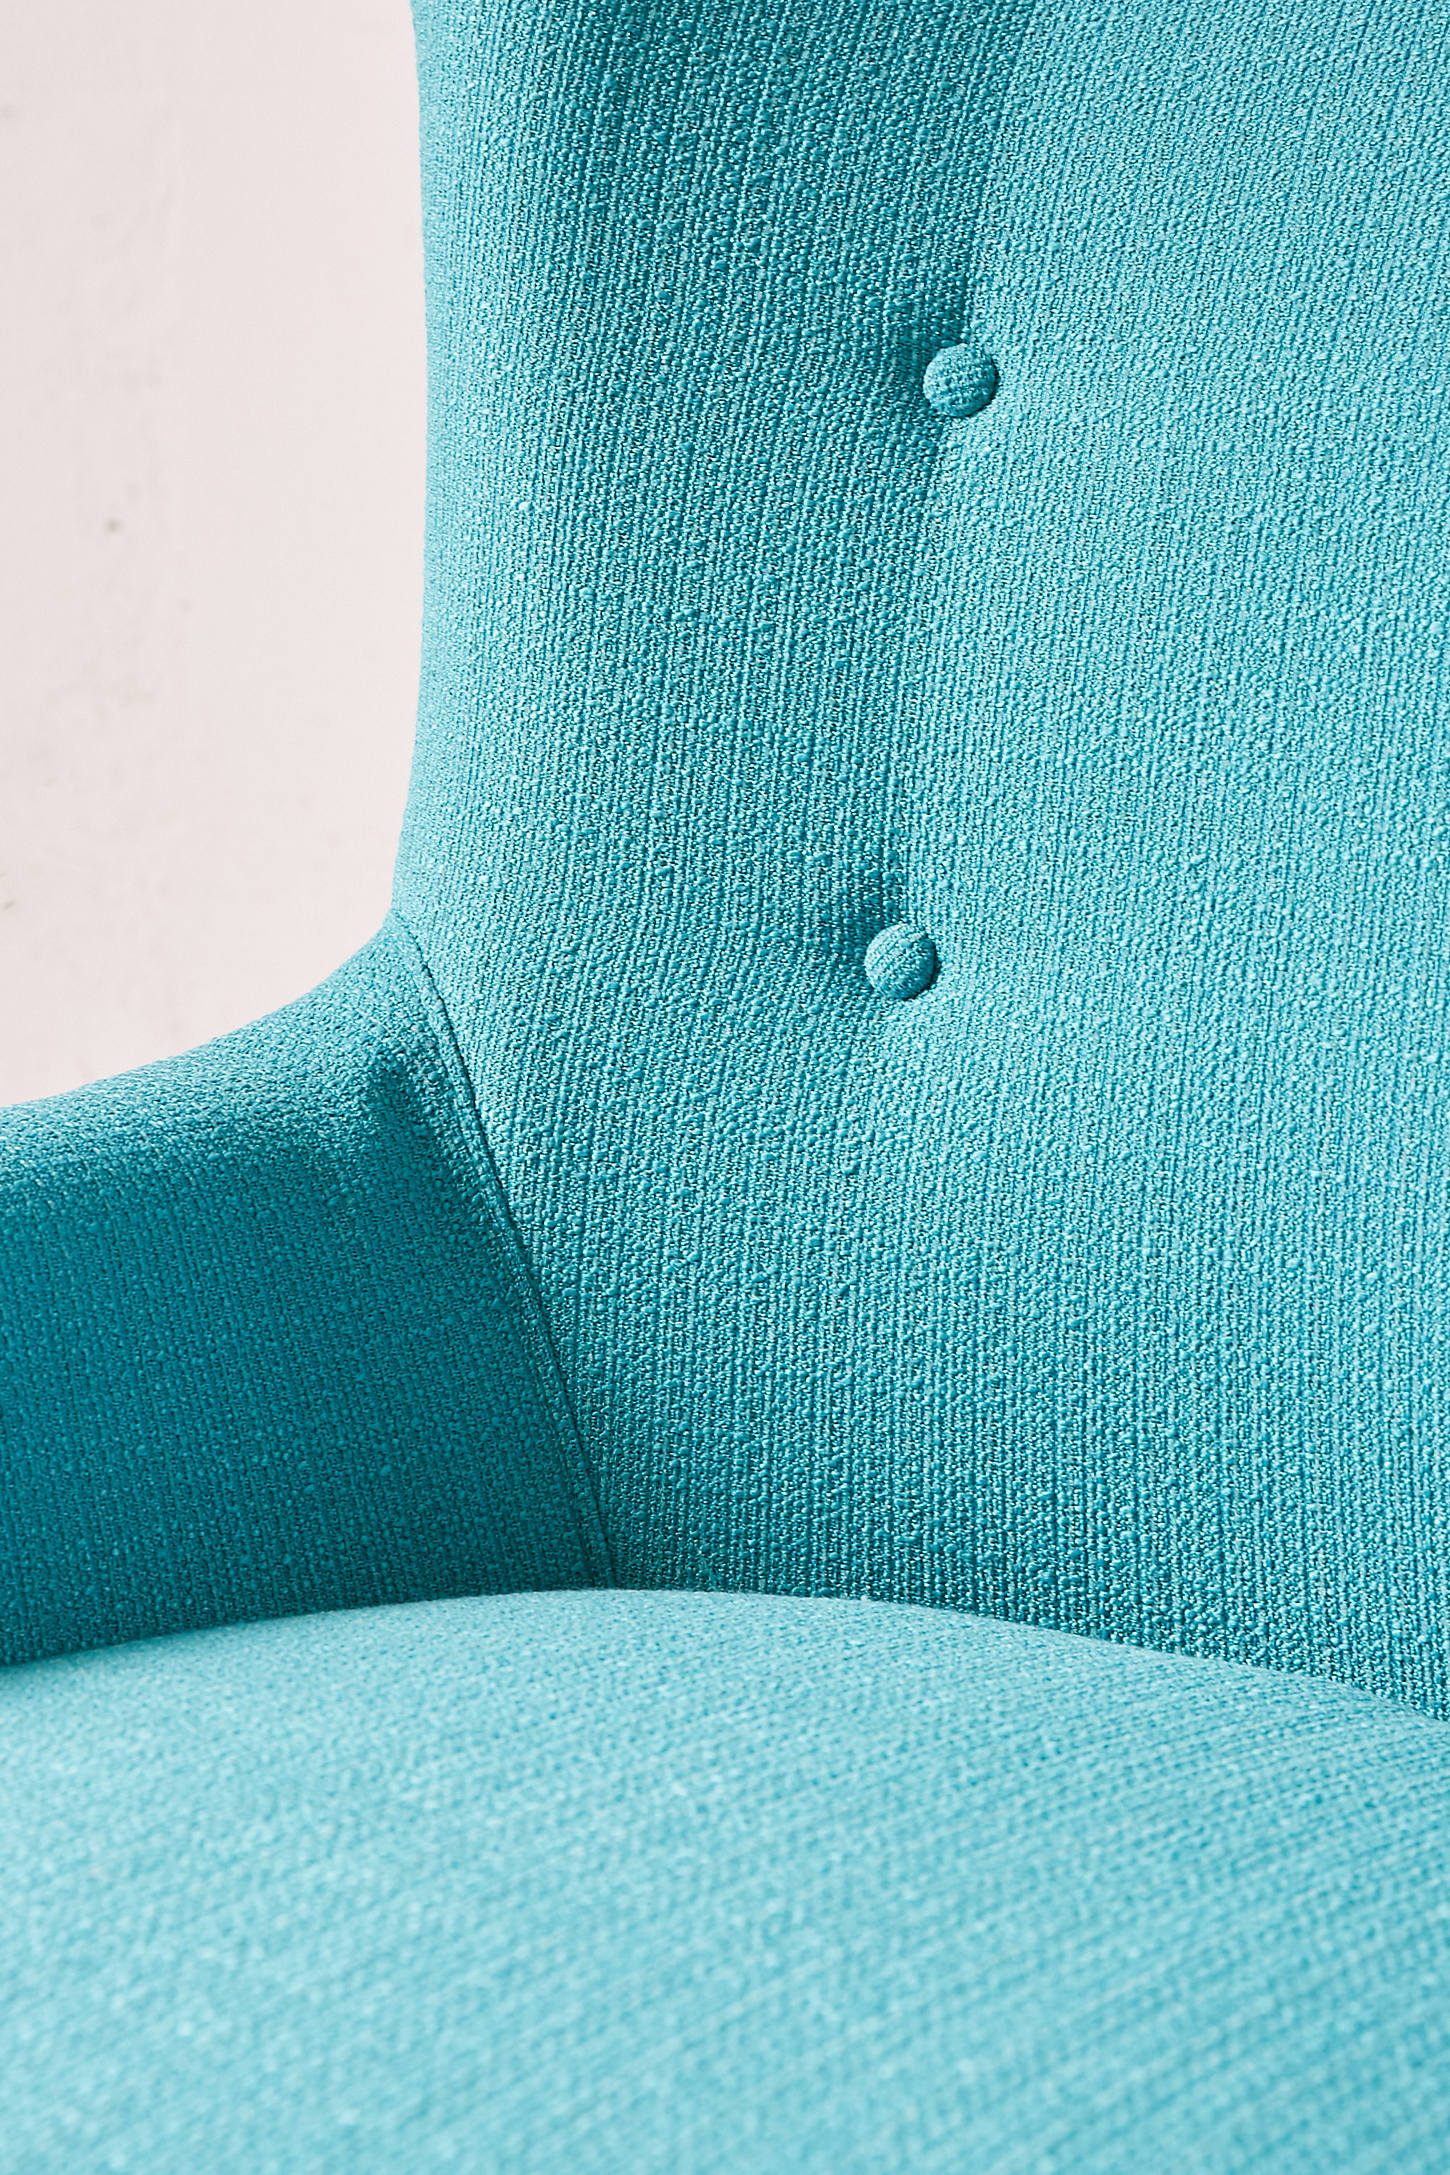 Teal Chair Frankie Arm Chair Urban Outfitters